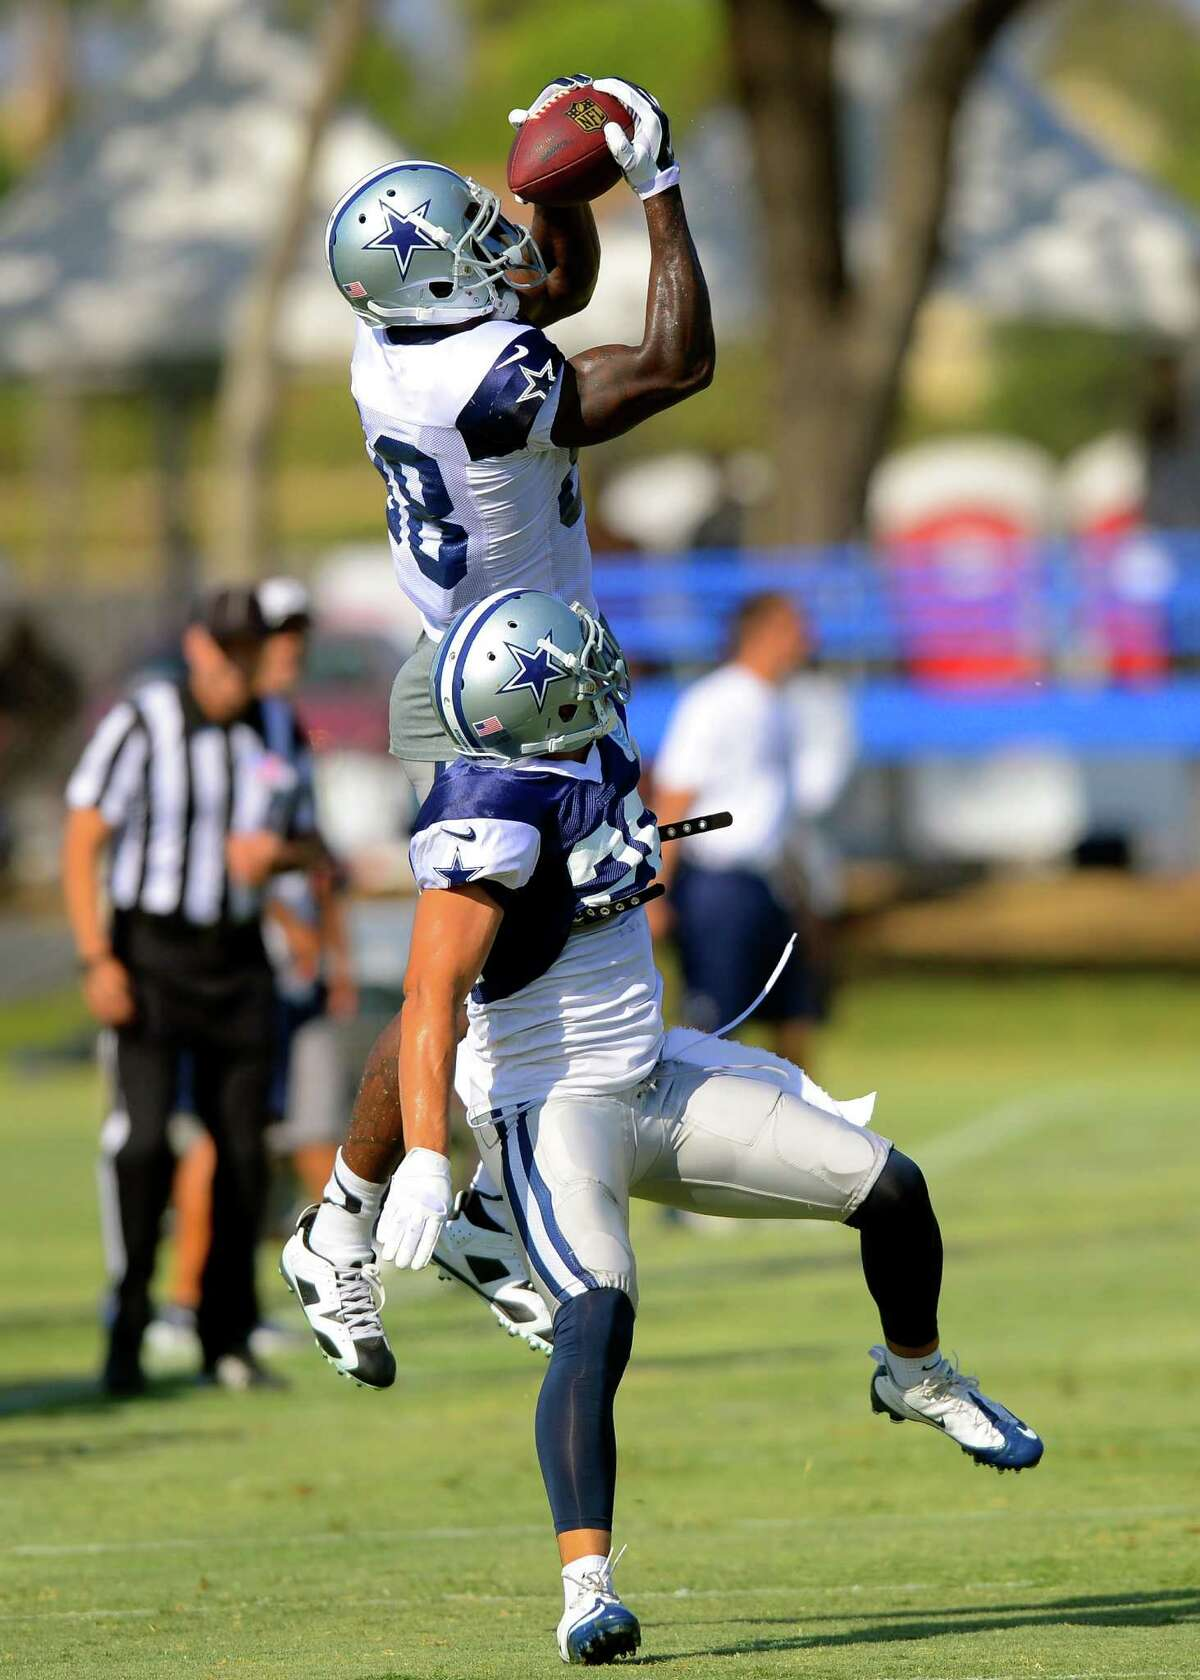 Dallas Cowboys cornerback Sterling Moore, front bottom, attempts to break up a pass to wide receiver Dez Bryant, back top, at NFL training camp, Saturday, July 26, 2014, in Oxnard, Calif. (AP Photo/Gus Ruelas)